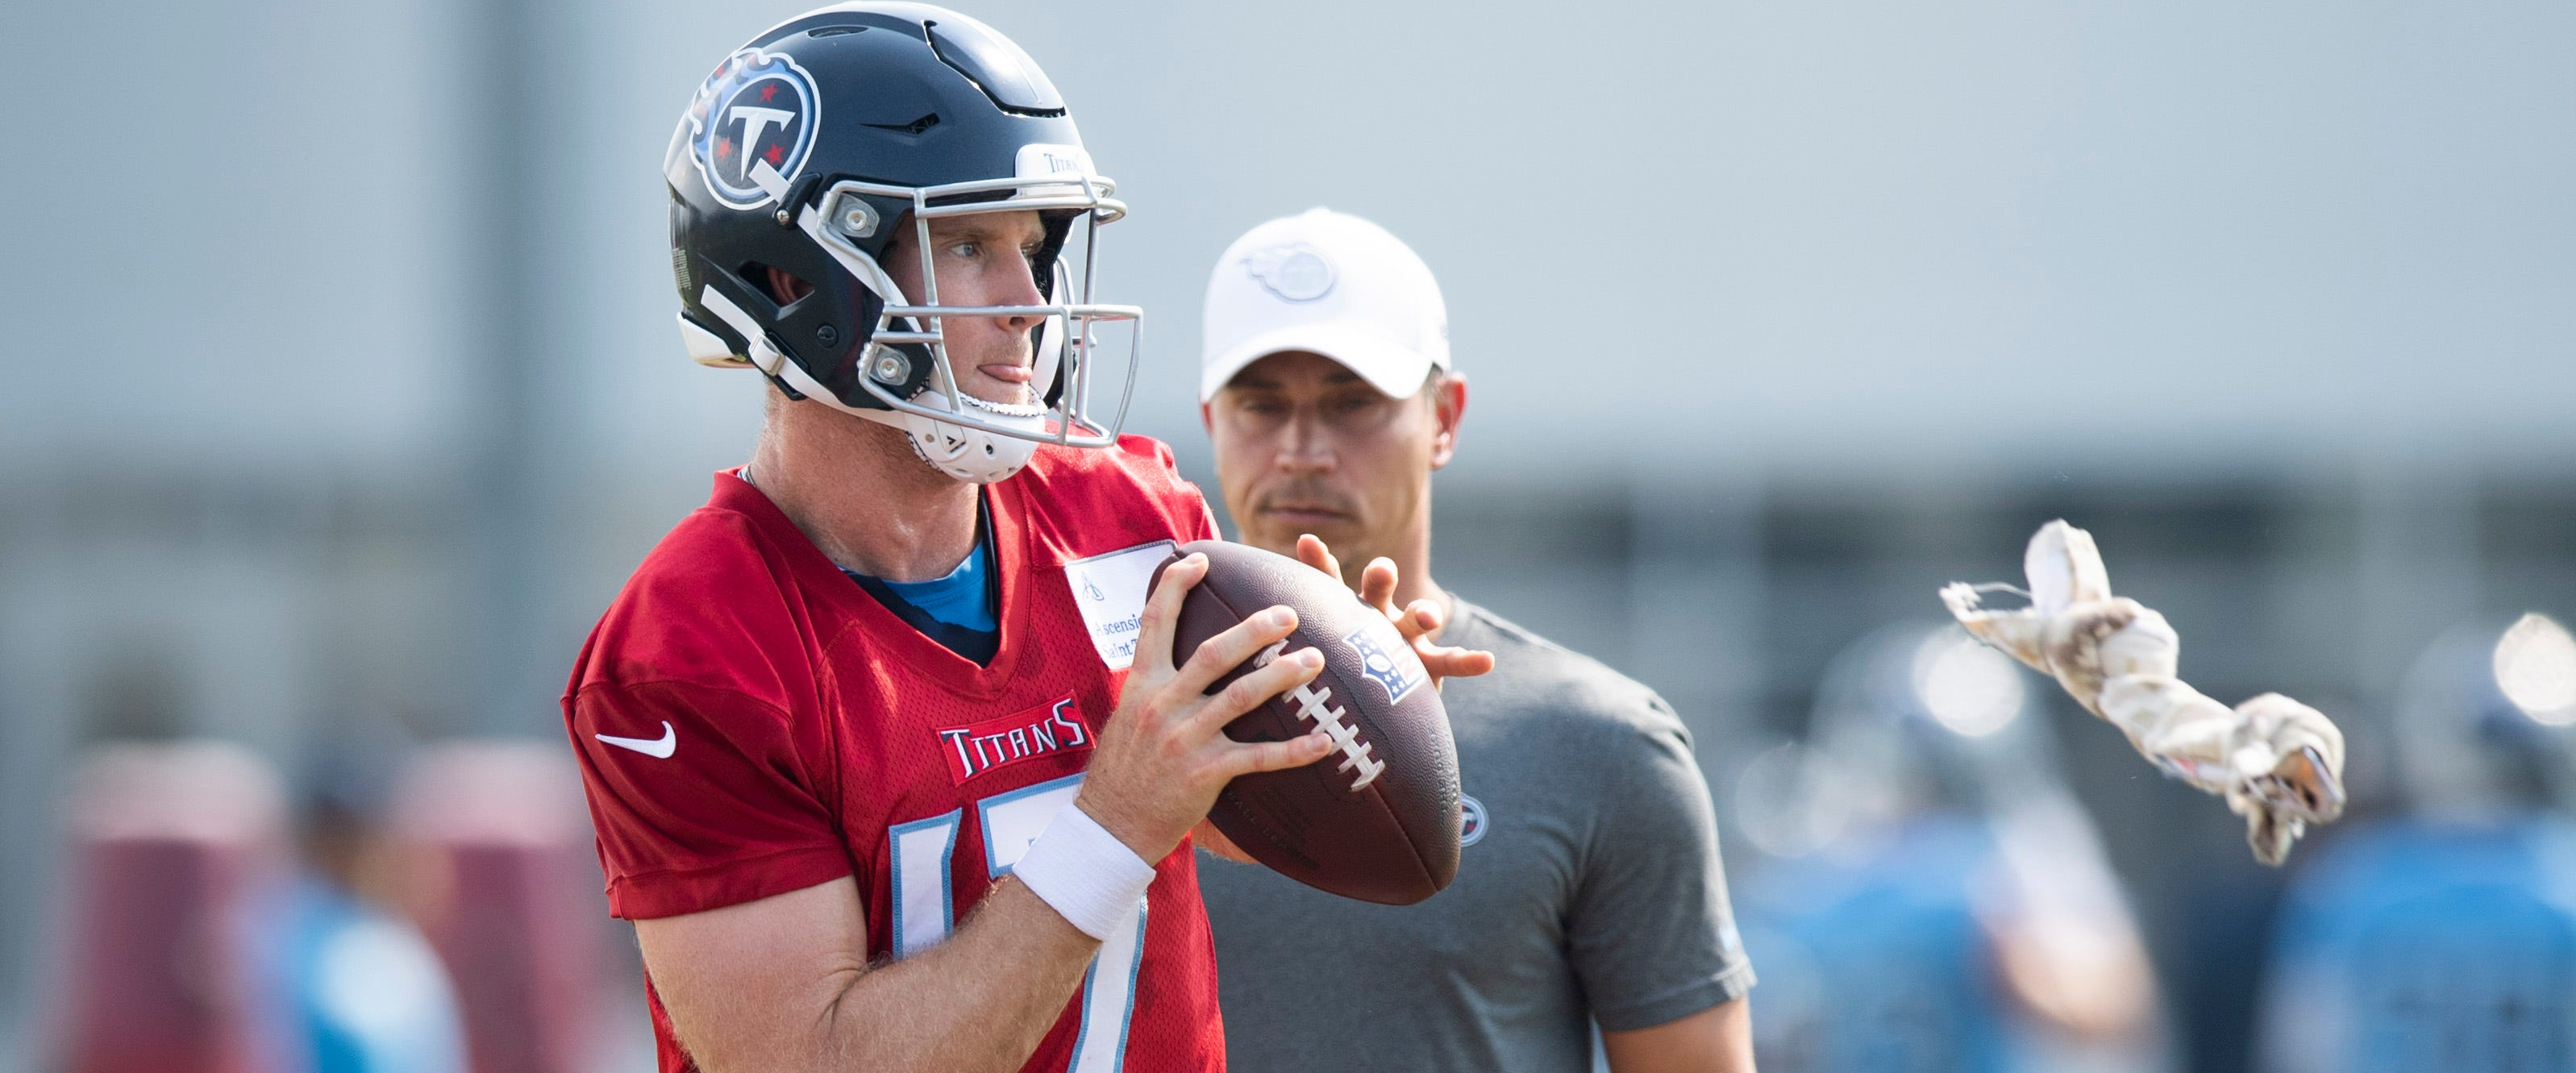 Titans: Ryan Tannehill's Madden 22 rating might surprise you!